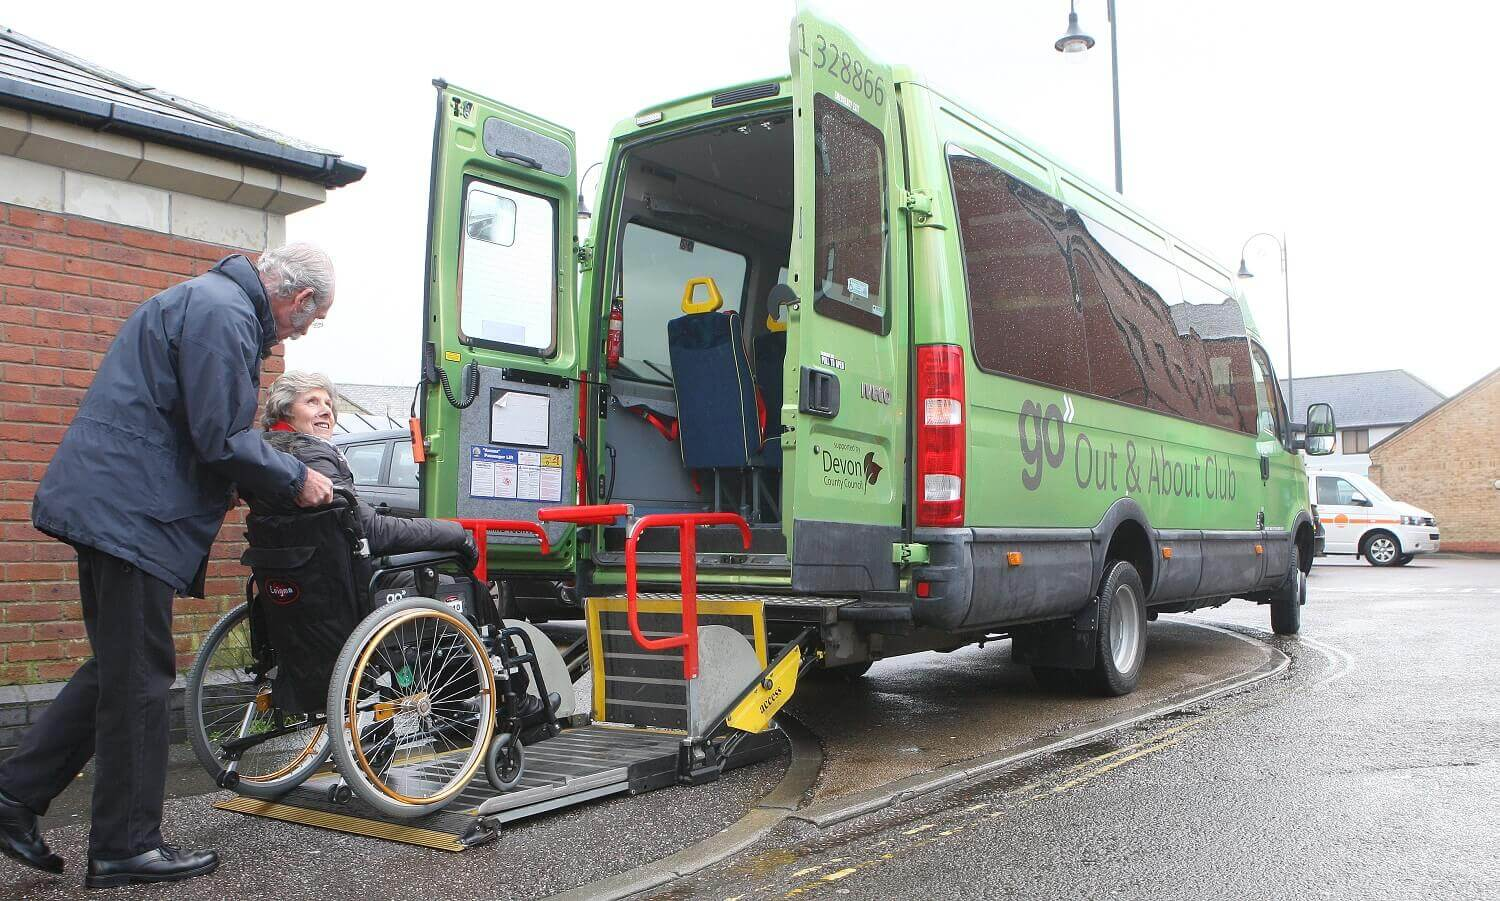 A Go North Devon driver assisting an elderly lady in a wheelchair on a bus via the accessibility lift.